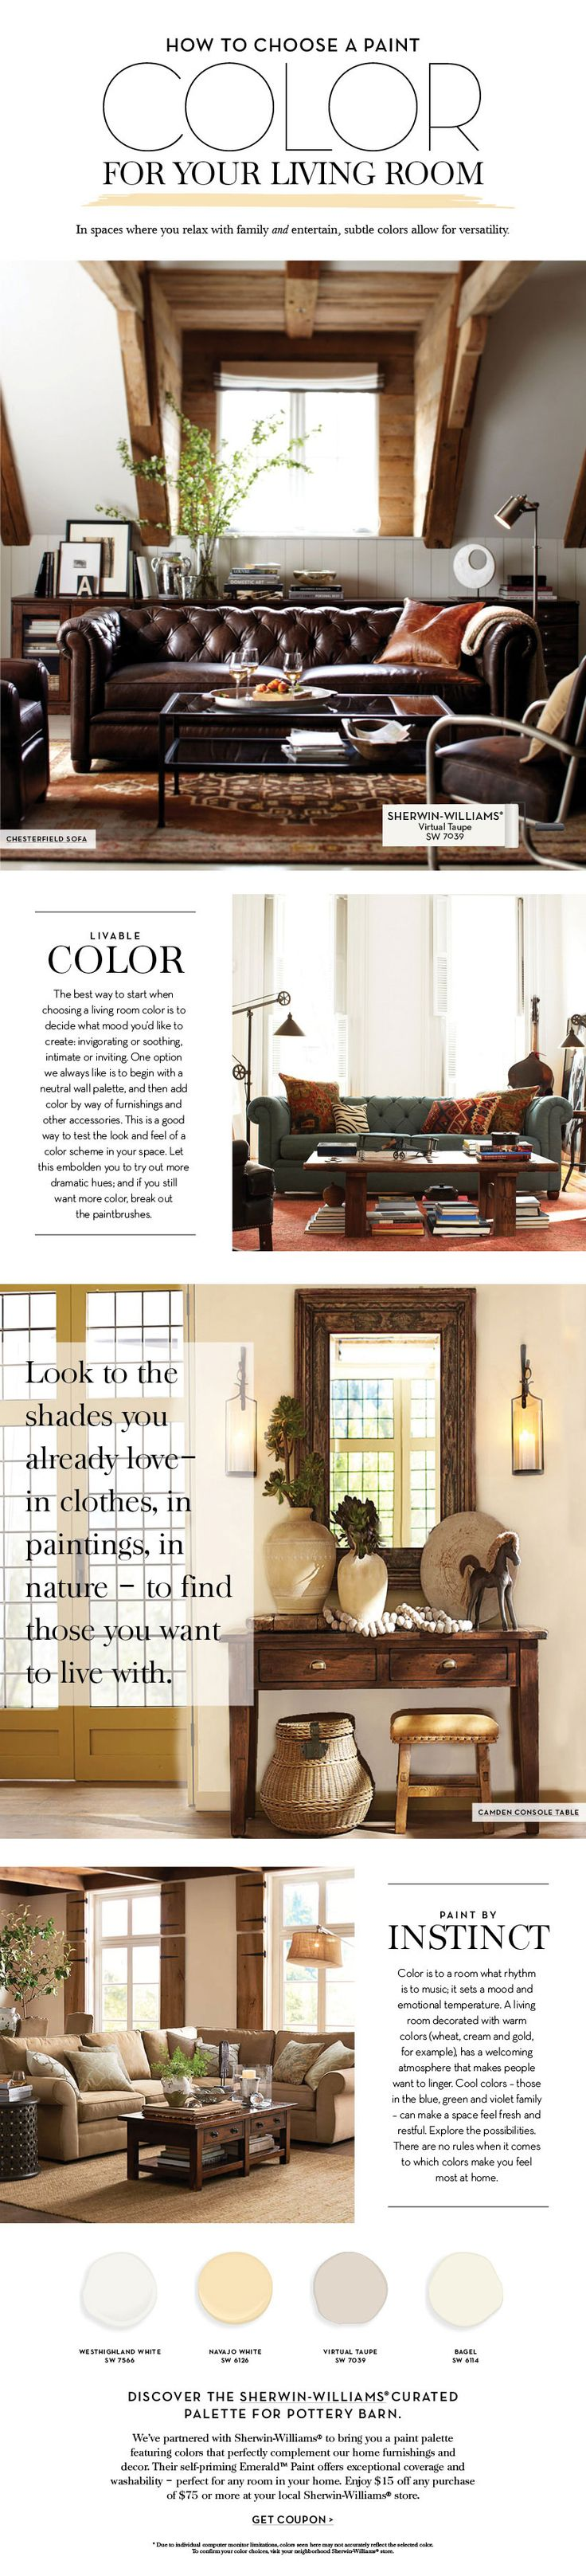 Choose a Paint Color For Your Living Room | Pottery Barn